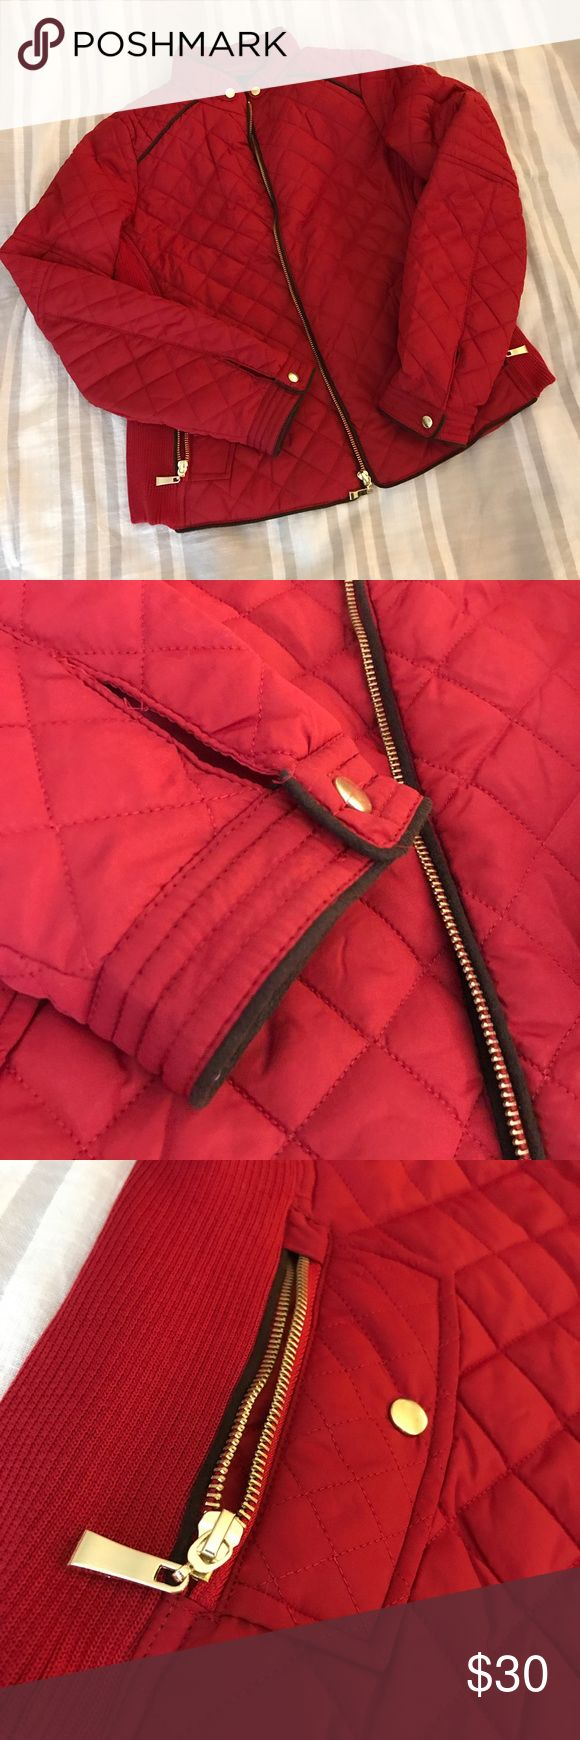 Red Puffer Jacket NWT — Never Worn  Brand new red puffer jacket.   Open to offers 😊 Red Dress Boutique Jackets & Coats Puffers